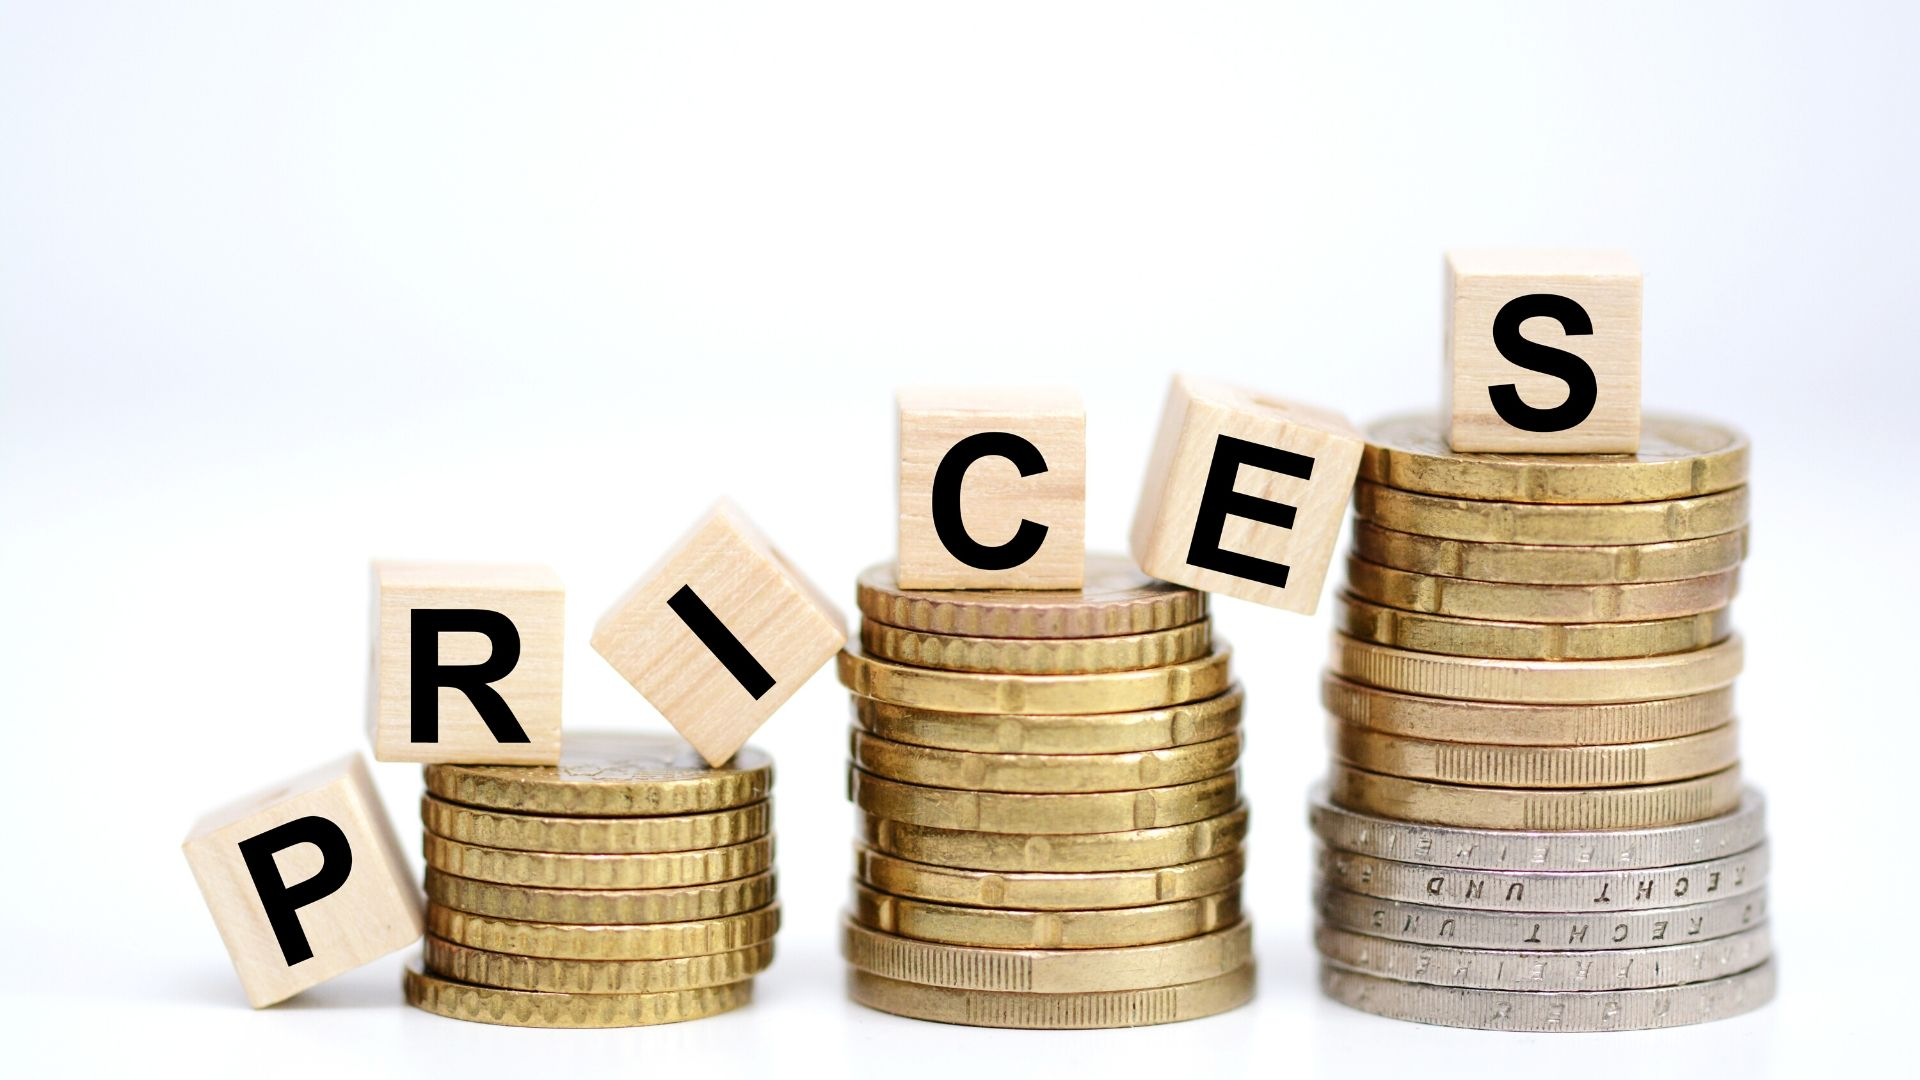 Image of 3 coin towers all increasing in height with the word 'prices' spelled out in wooden blocks on top of the coins